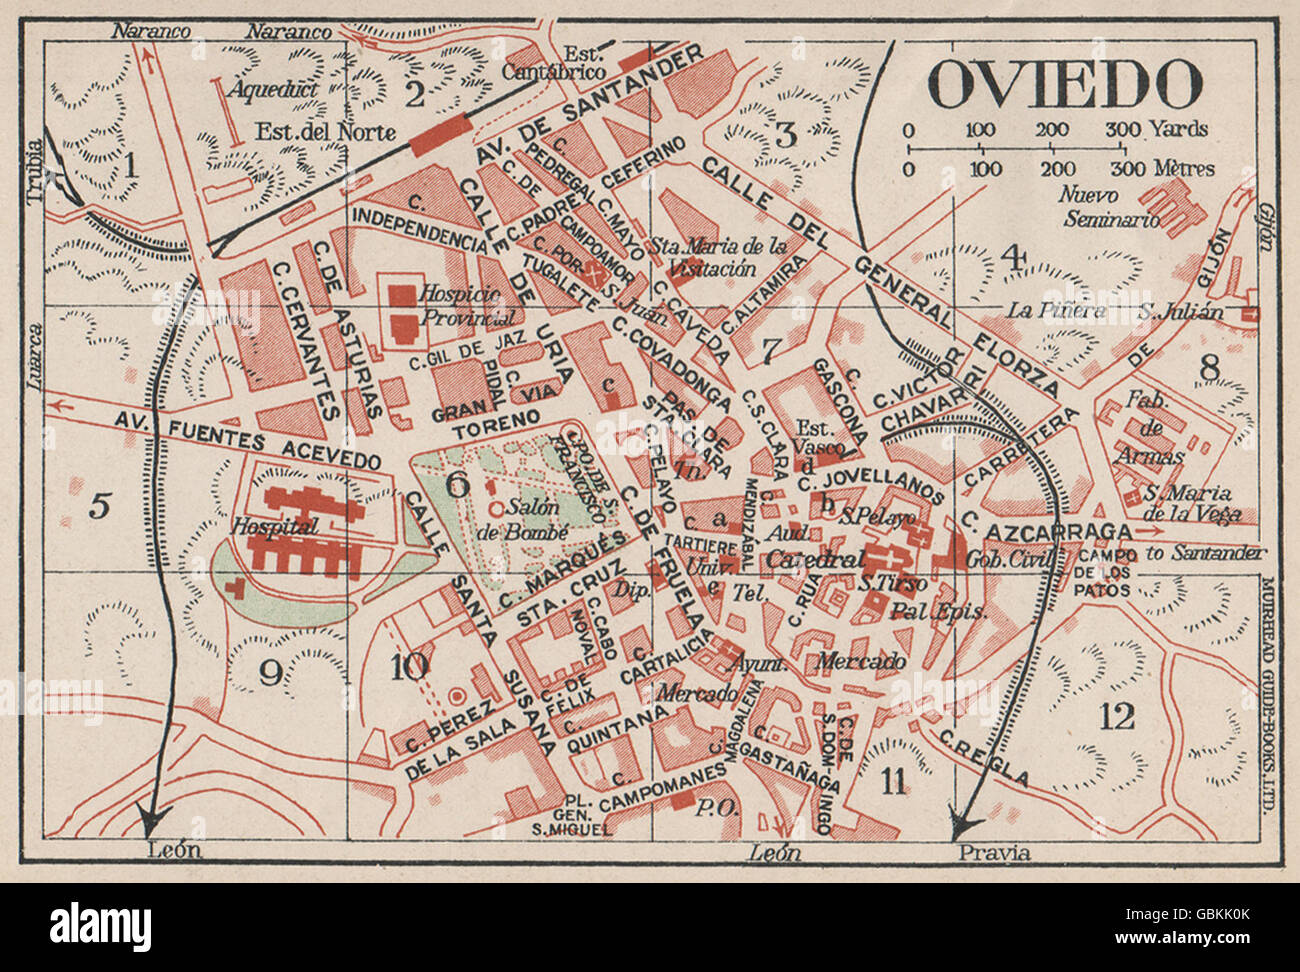 Map Of Spain 1930.Oviedo Vintage Town City Map Plan Spain 1930 Stock Photo